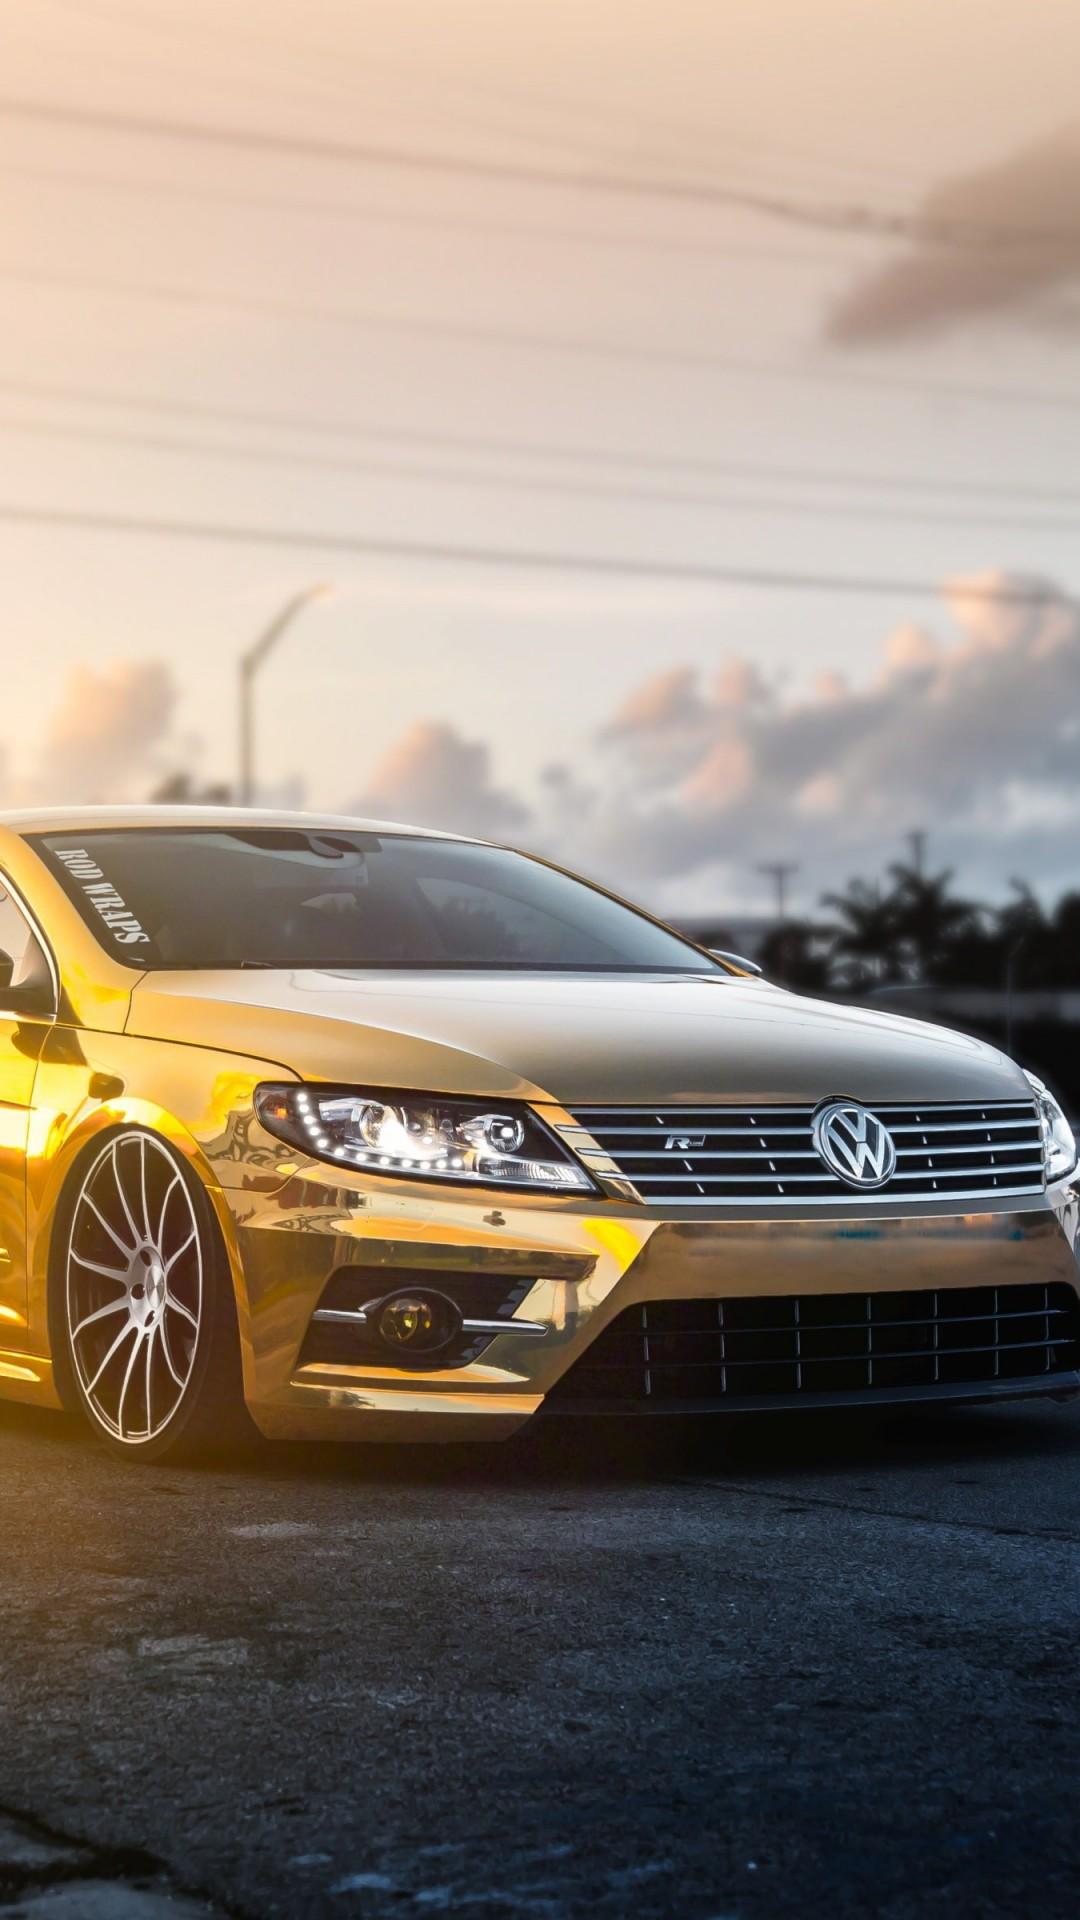 Golden Volkswagen Passat CC Wallpaper for SAMSUNG Galaxy Note 3